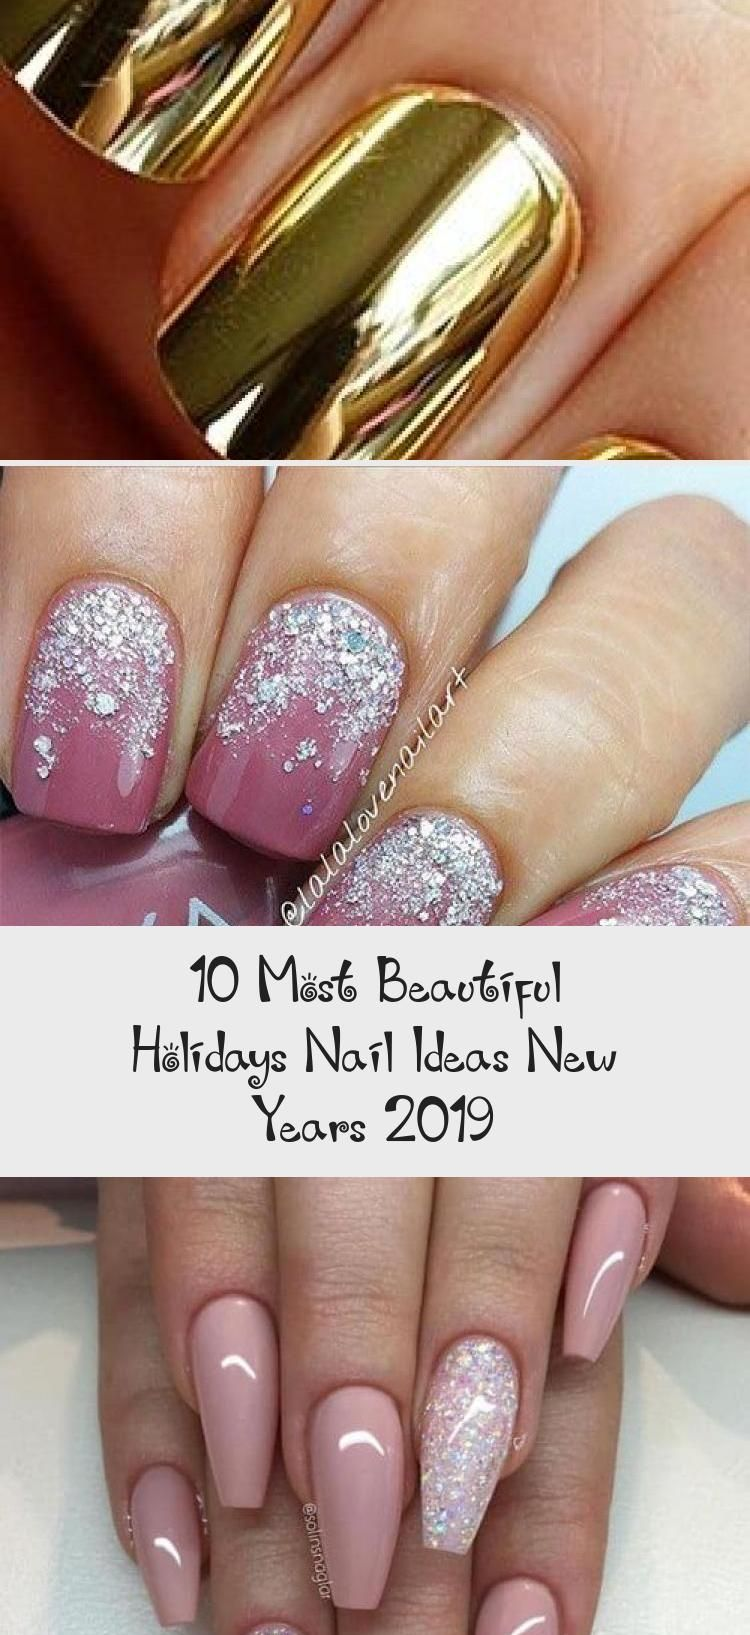 10 Most Beautiful Holidays Nail Ideas New Years 2019 in